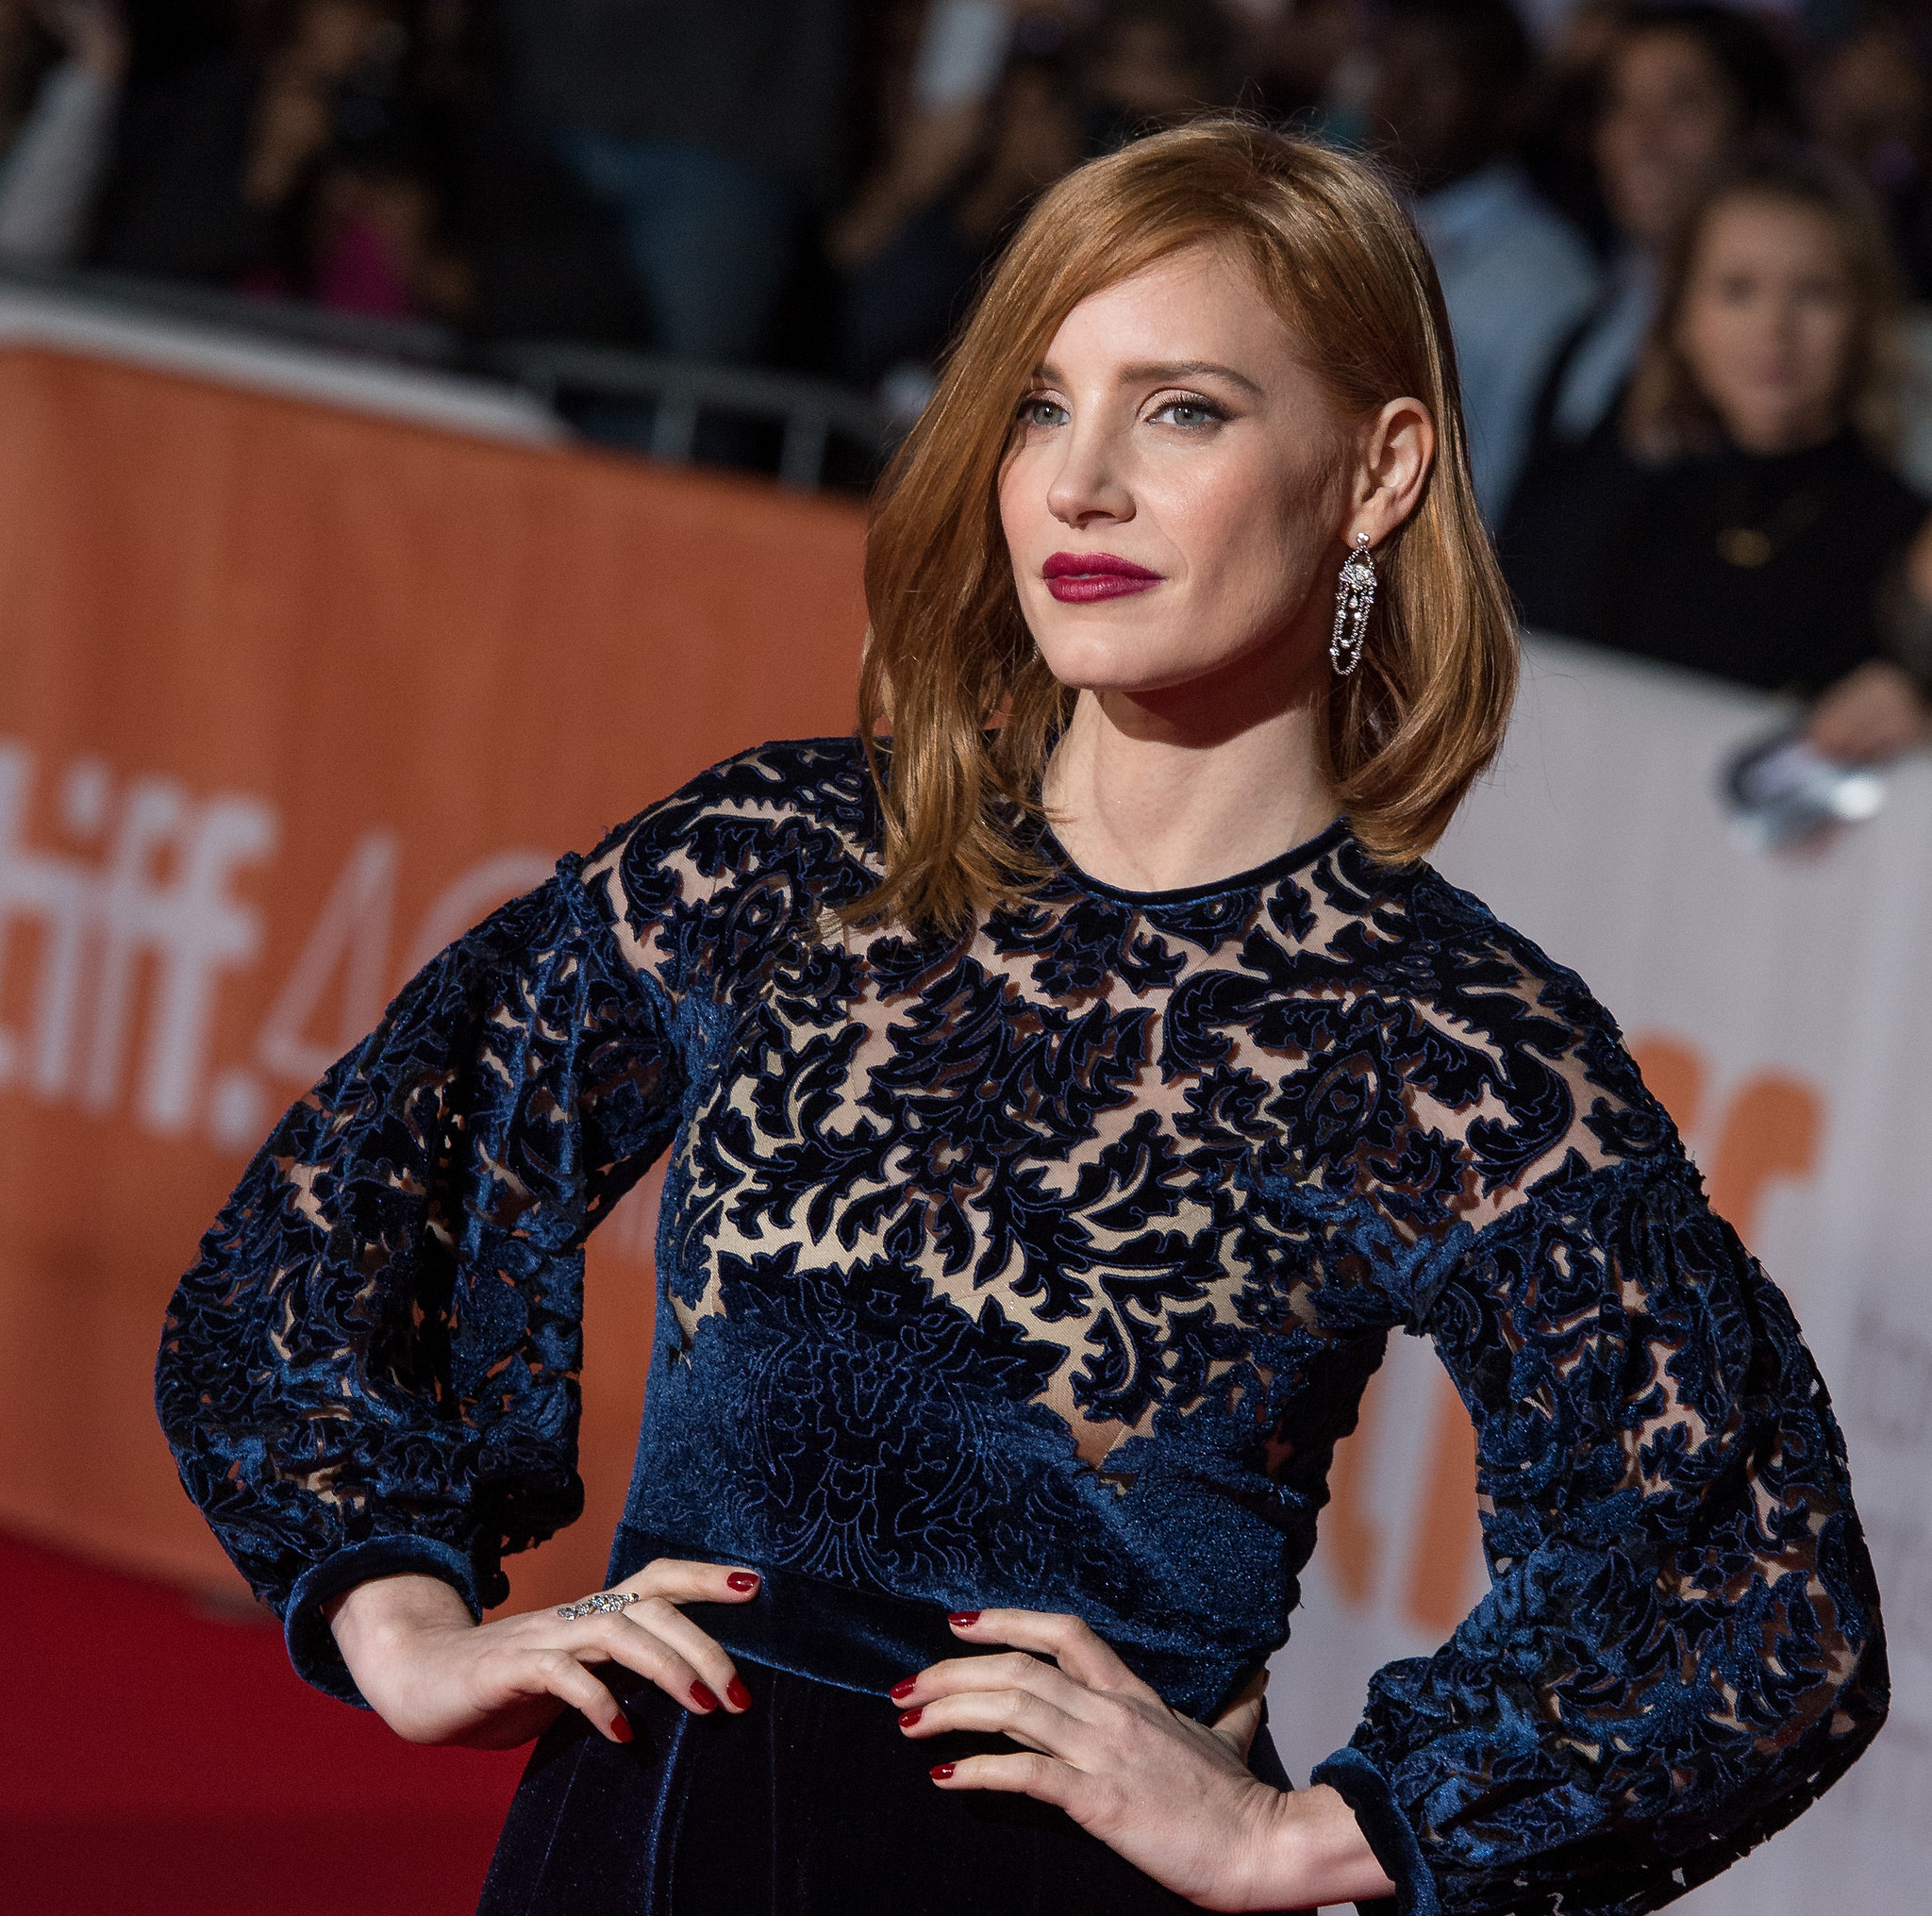 Actress Jessica Chastain attends